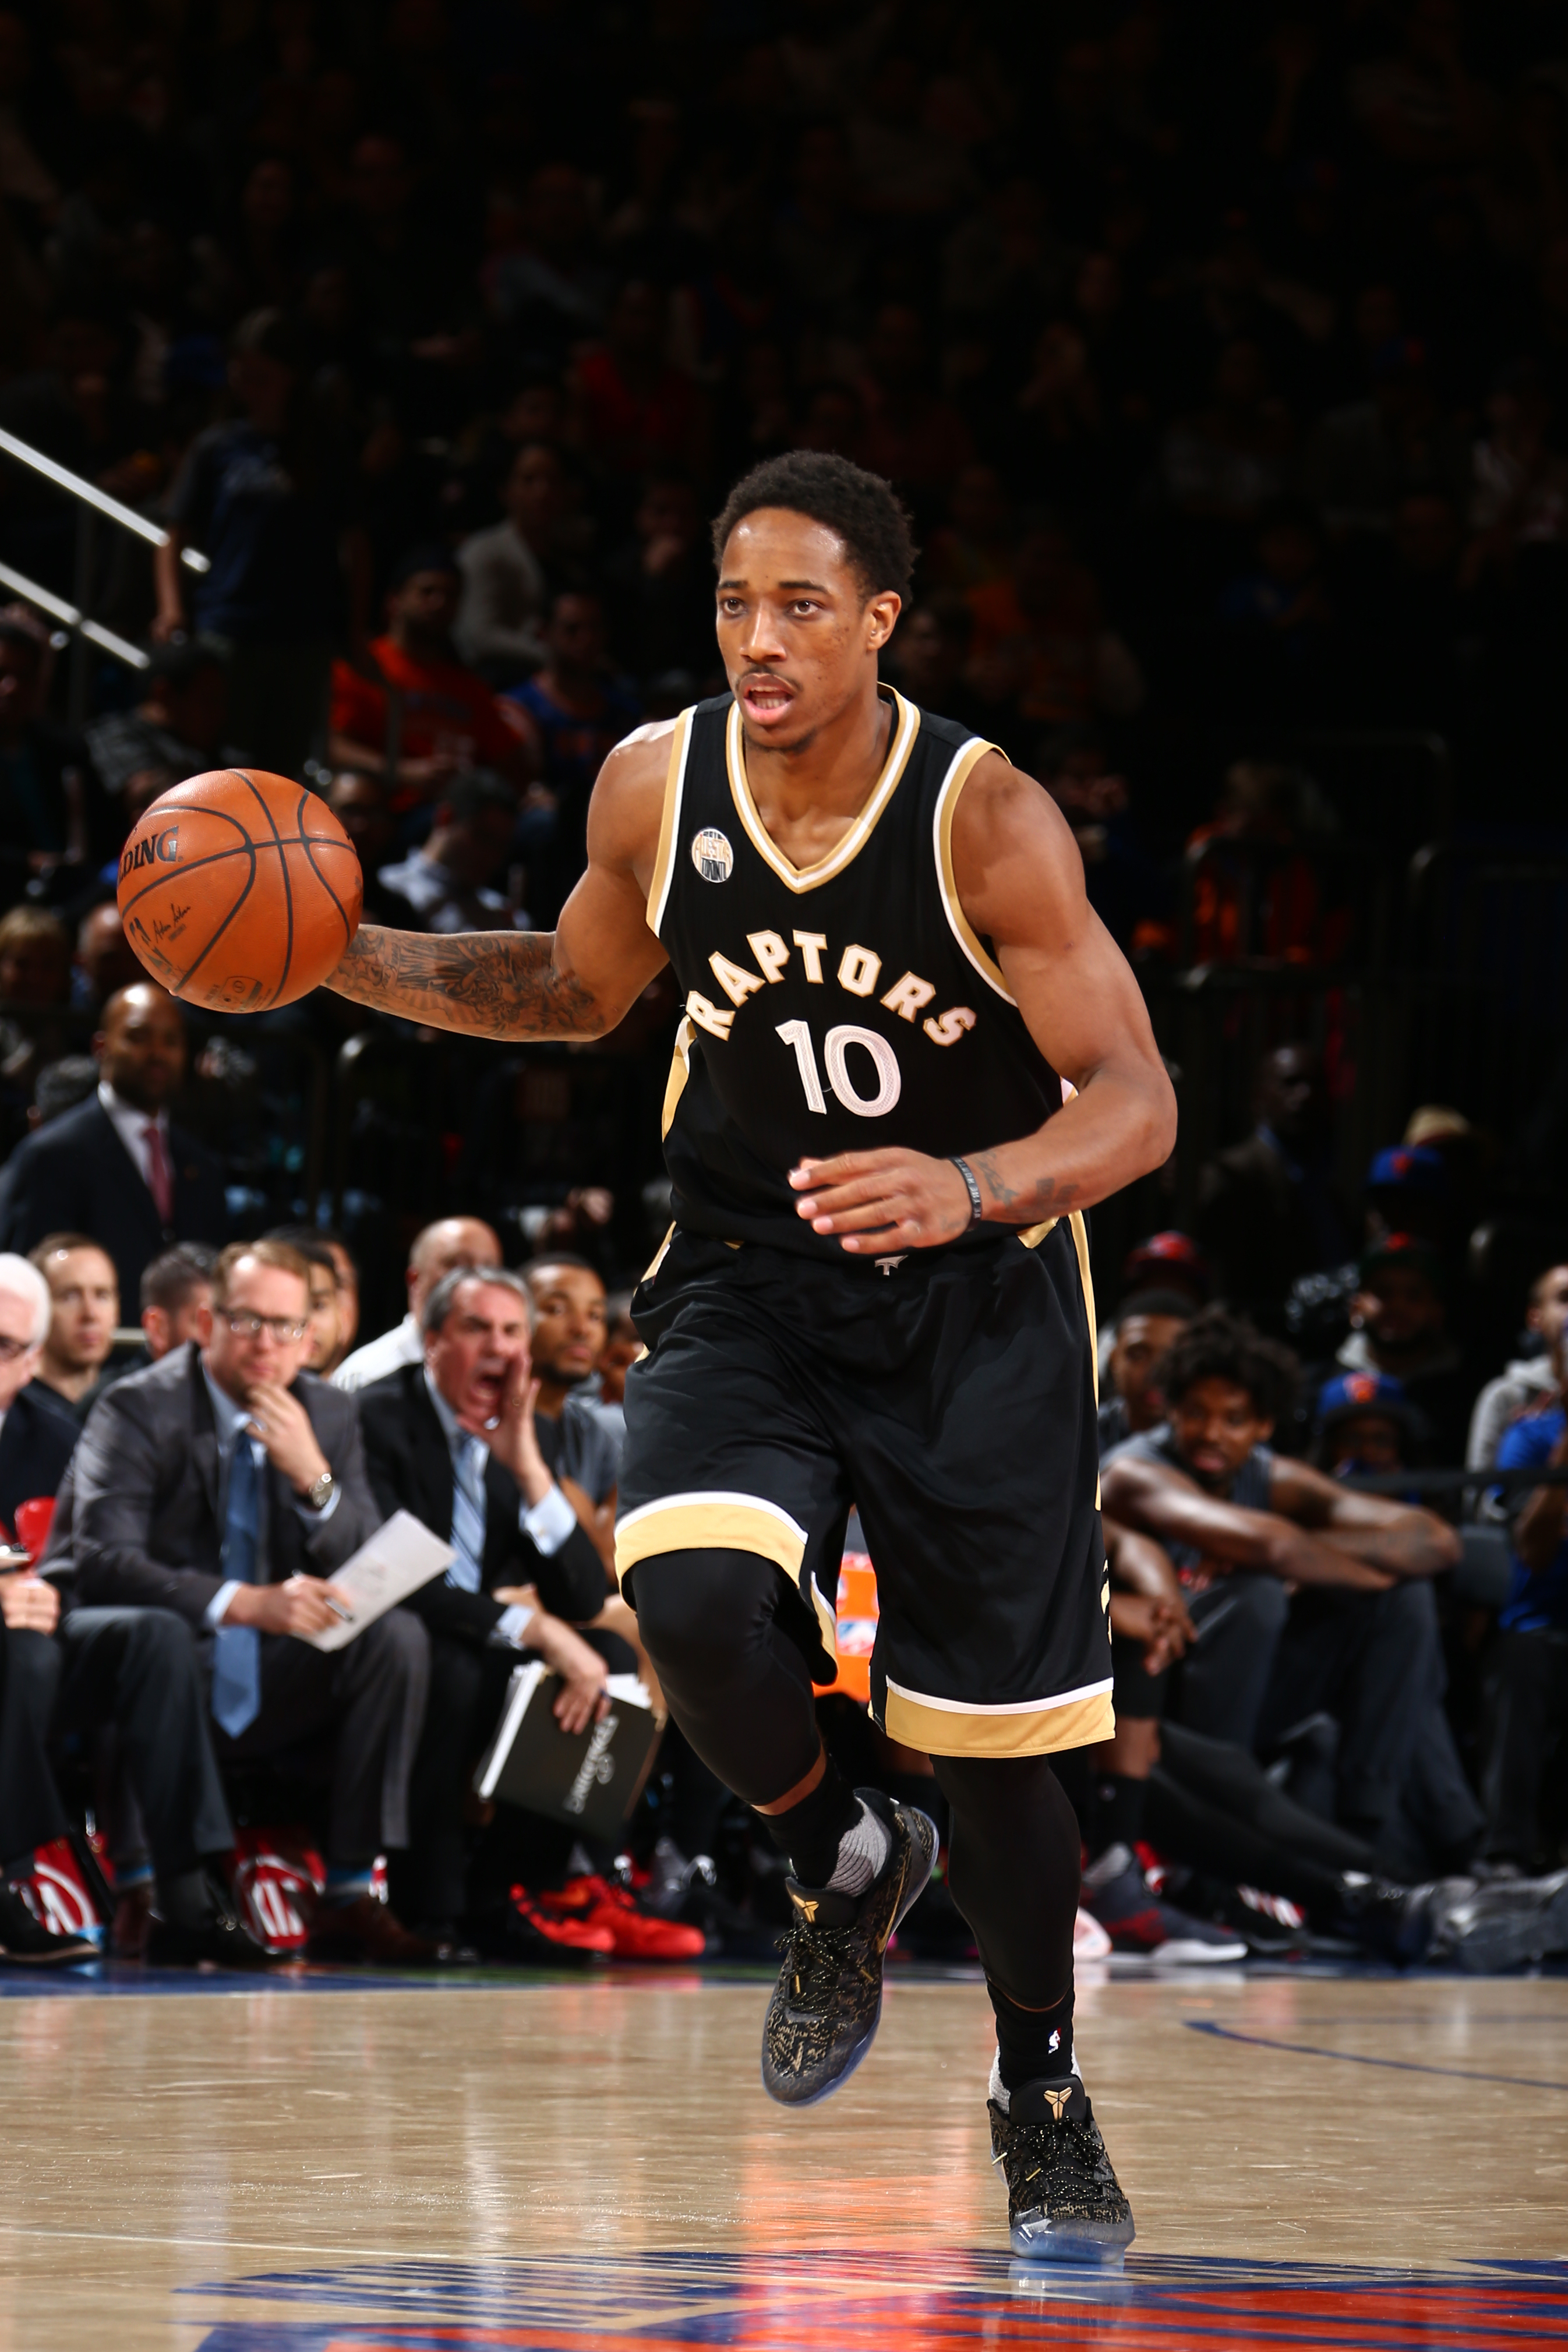 NEW YORK, NY - APRIL 10:  DeMar DeRozan #10 of the Toronto Raptors brings the ball up court against the New York Knicks on April 10, 2016 at Madison Square Garden in New York City.  (Photo by Nathaniel S. Butler/NBAE via Getty Images)